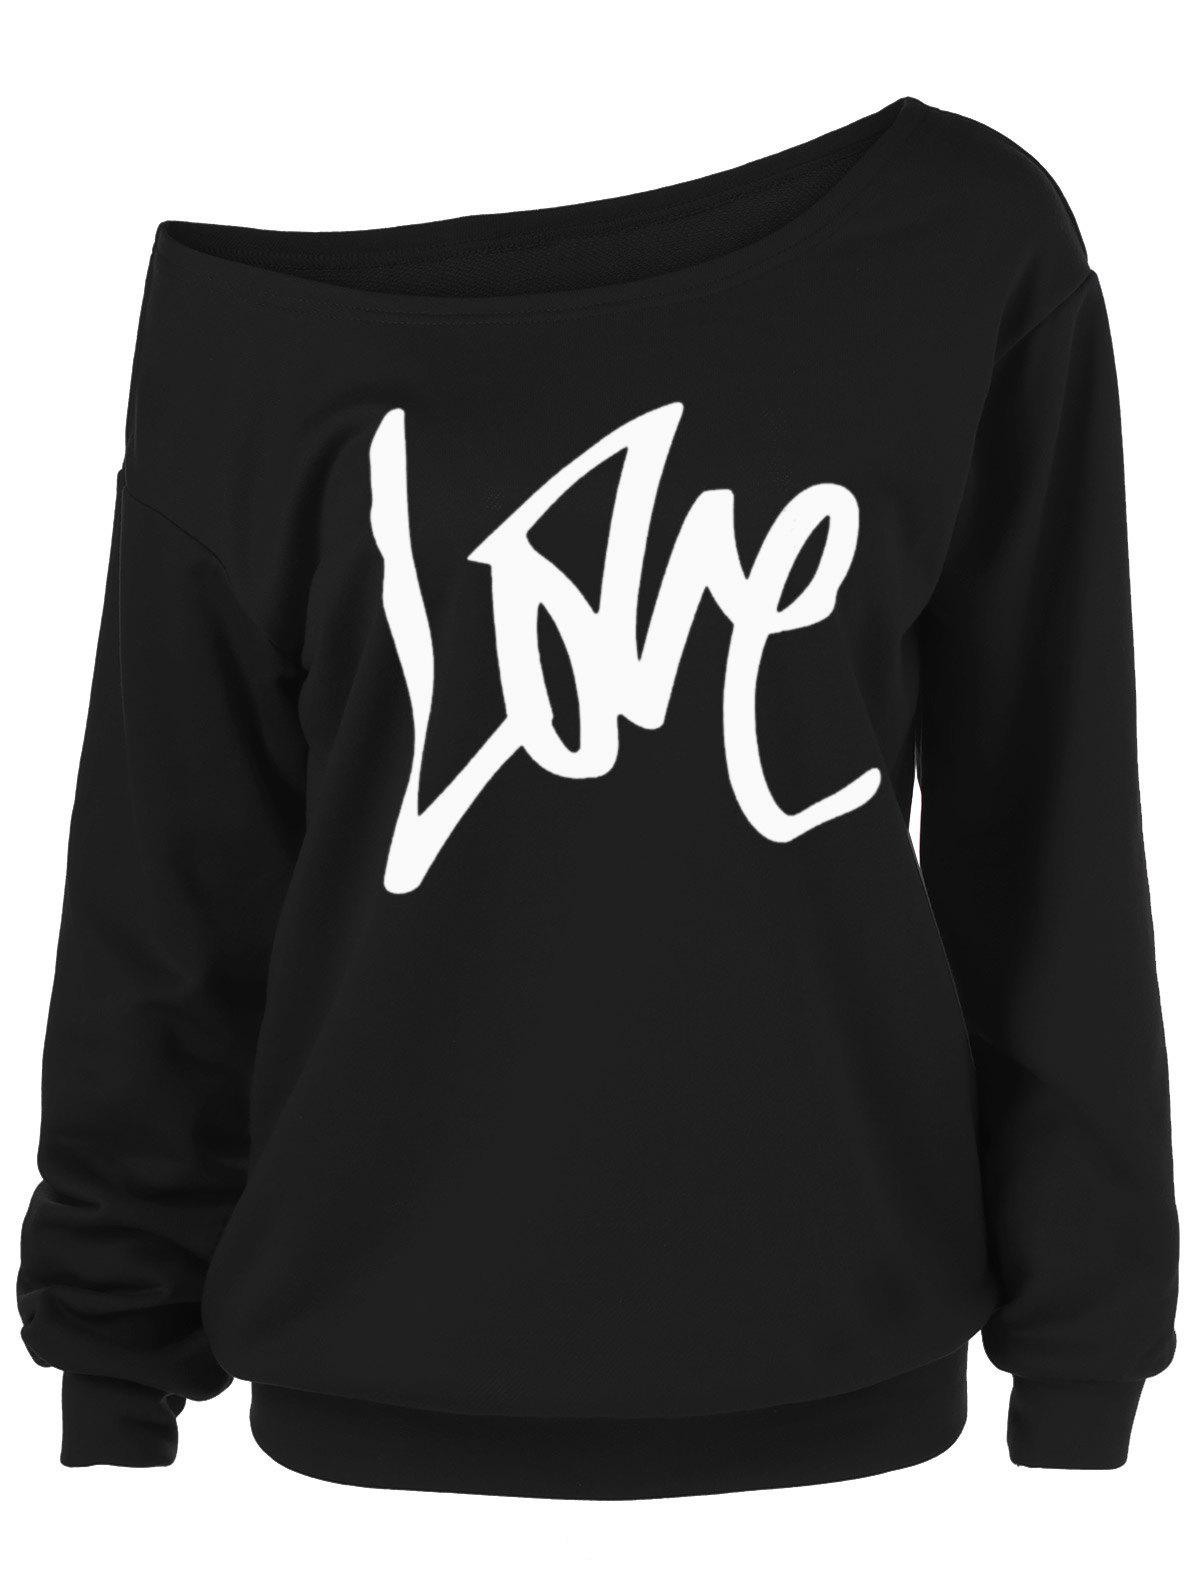 Fashion Skew Collar Love Plus Size Sweatshirt